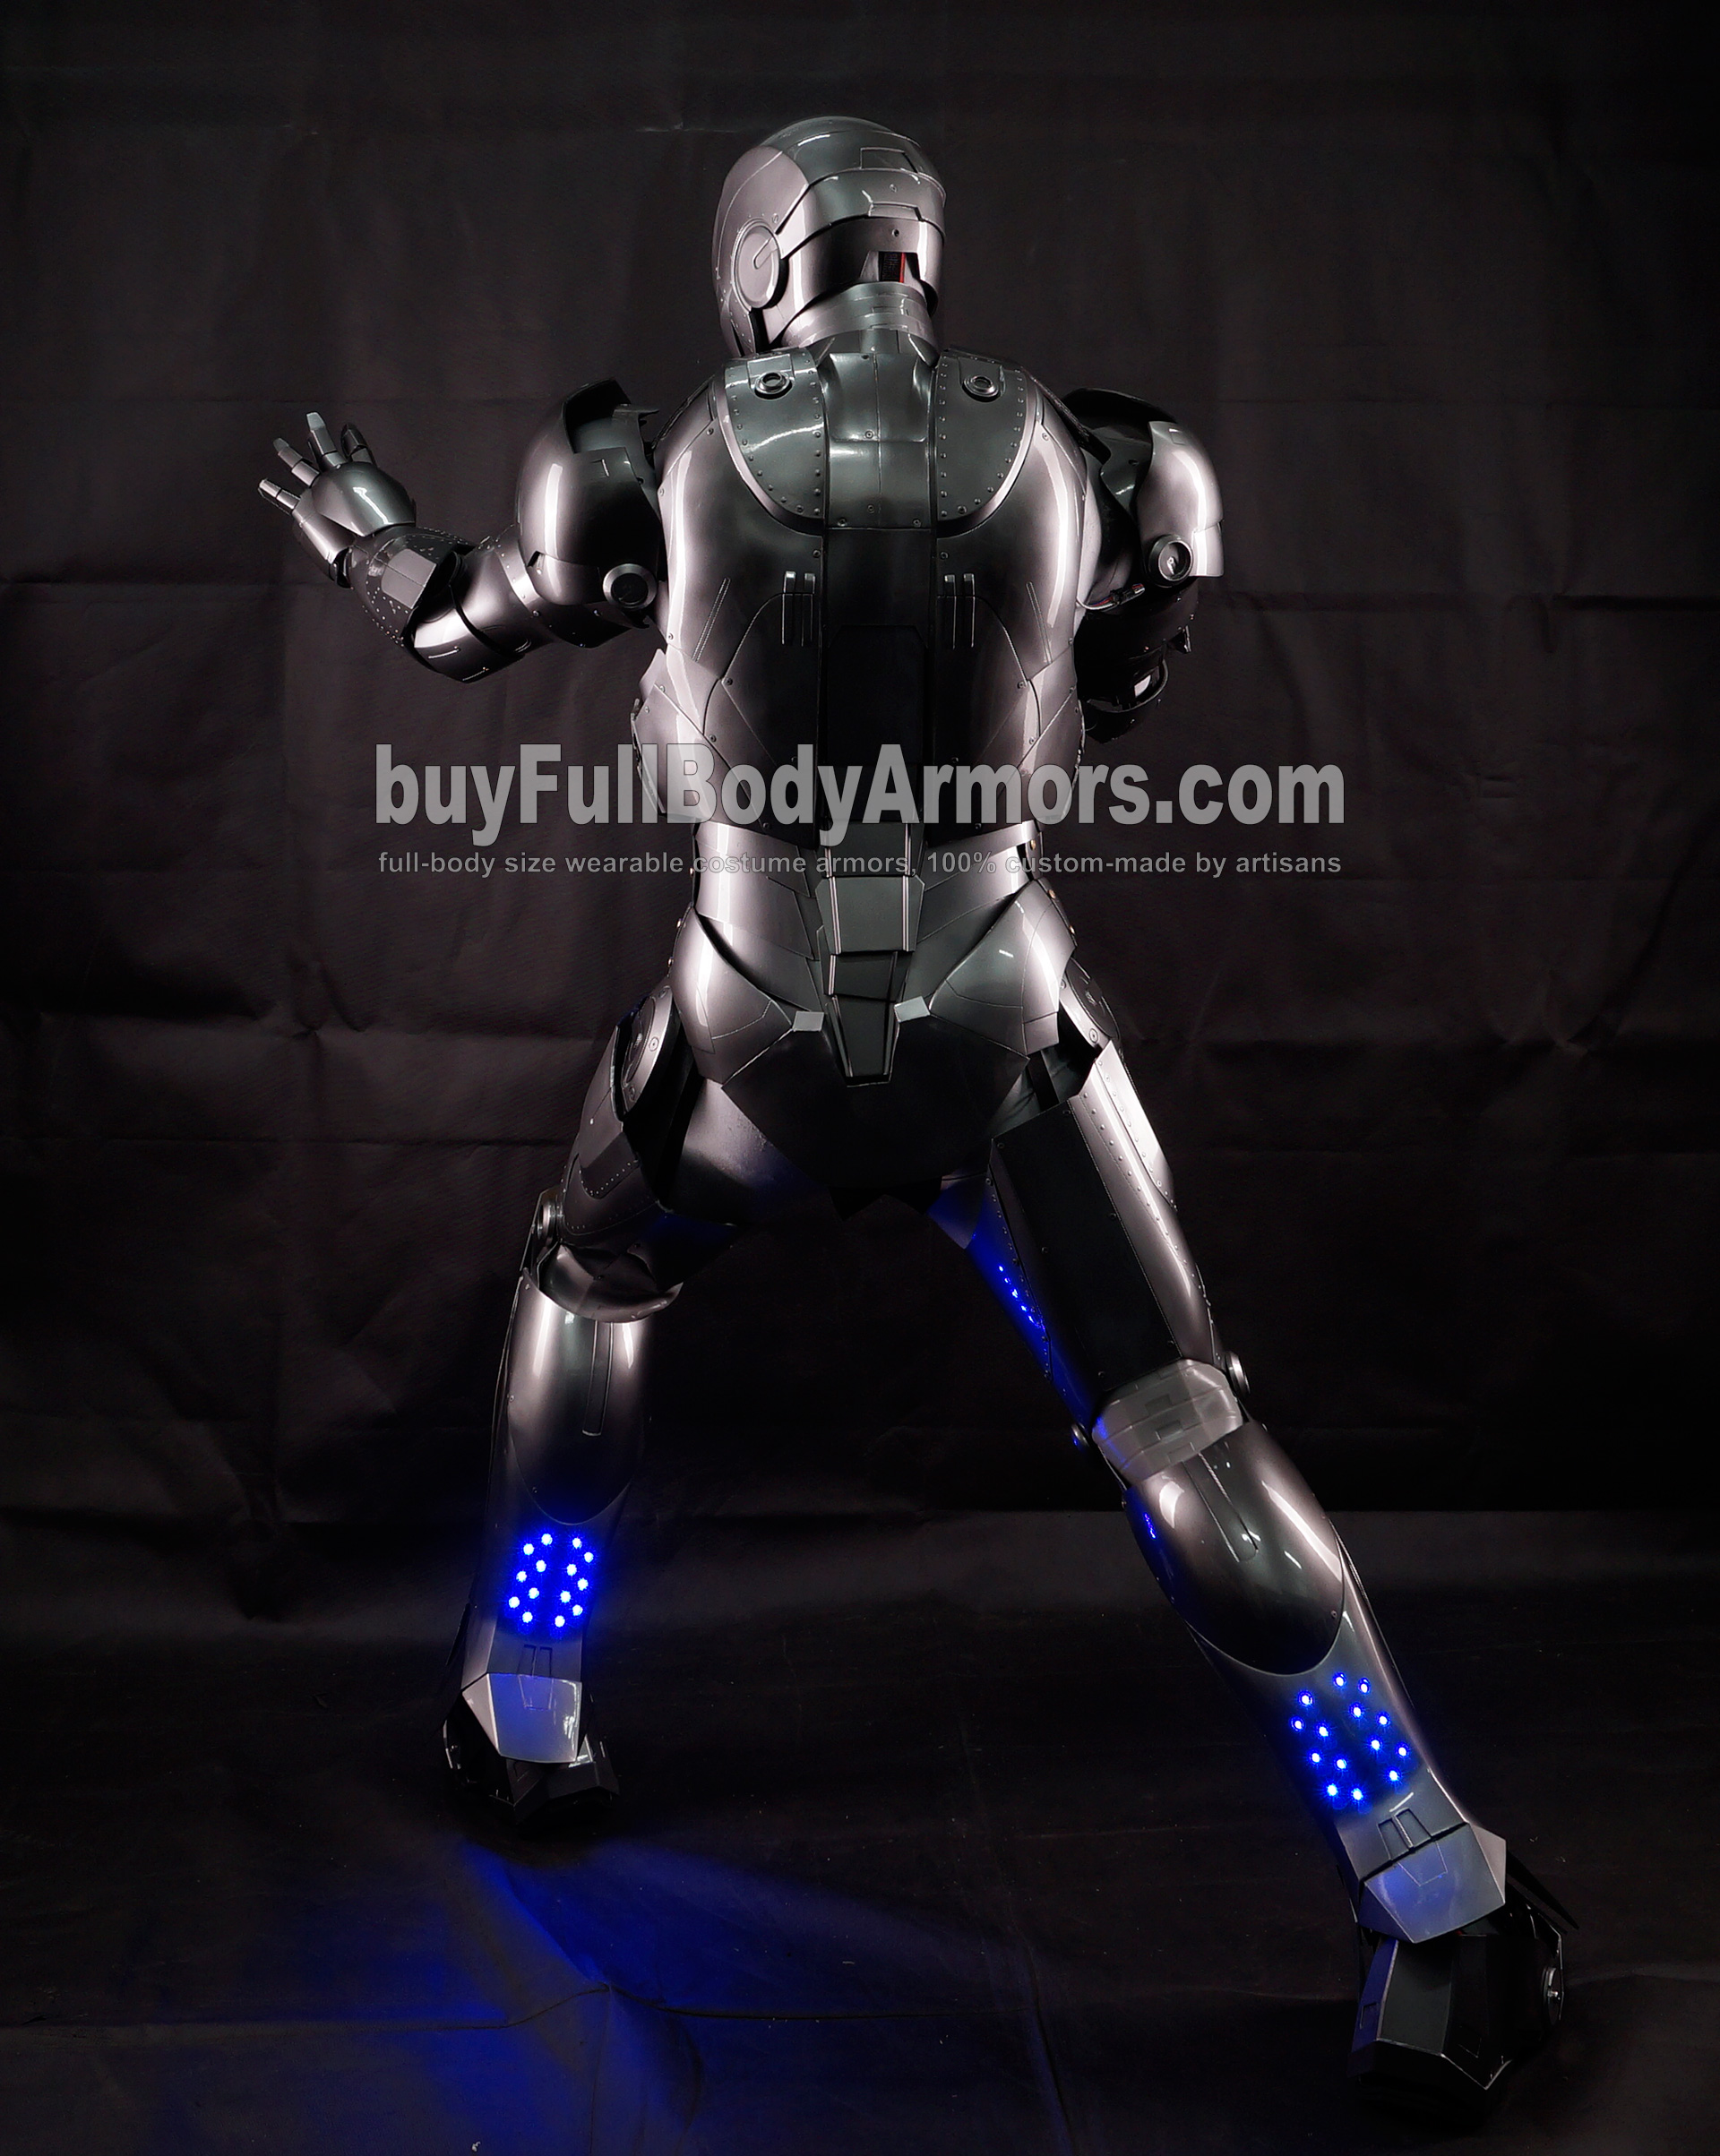 High Definition Photos of the Wearable Iron Man Mark 2 II Armor Costume Suit 9